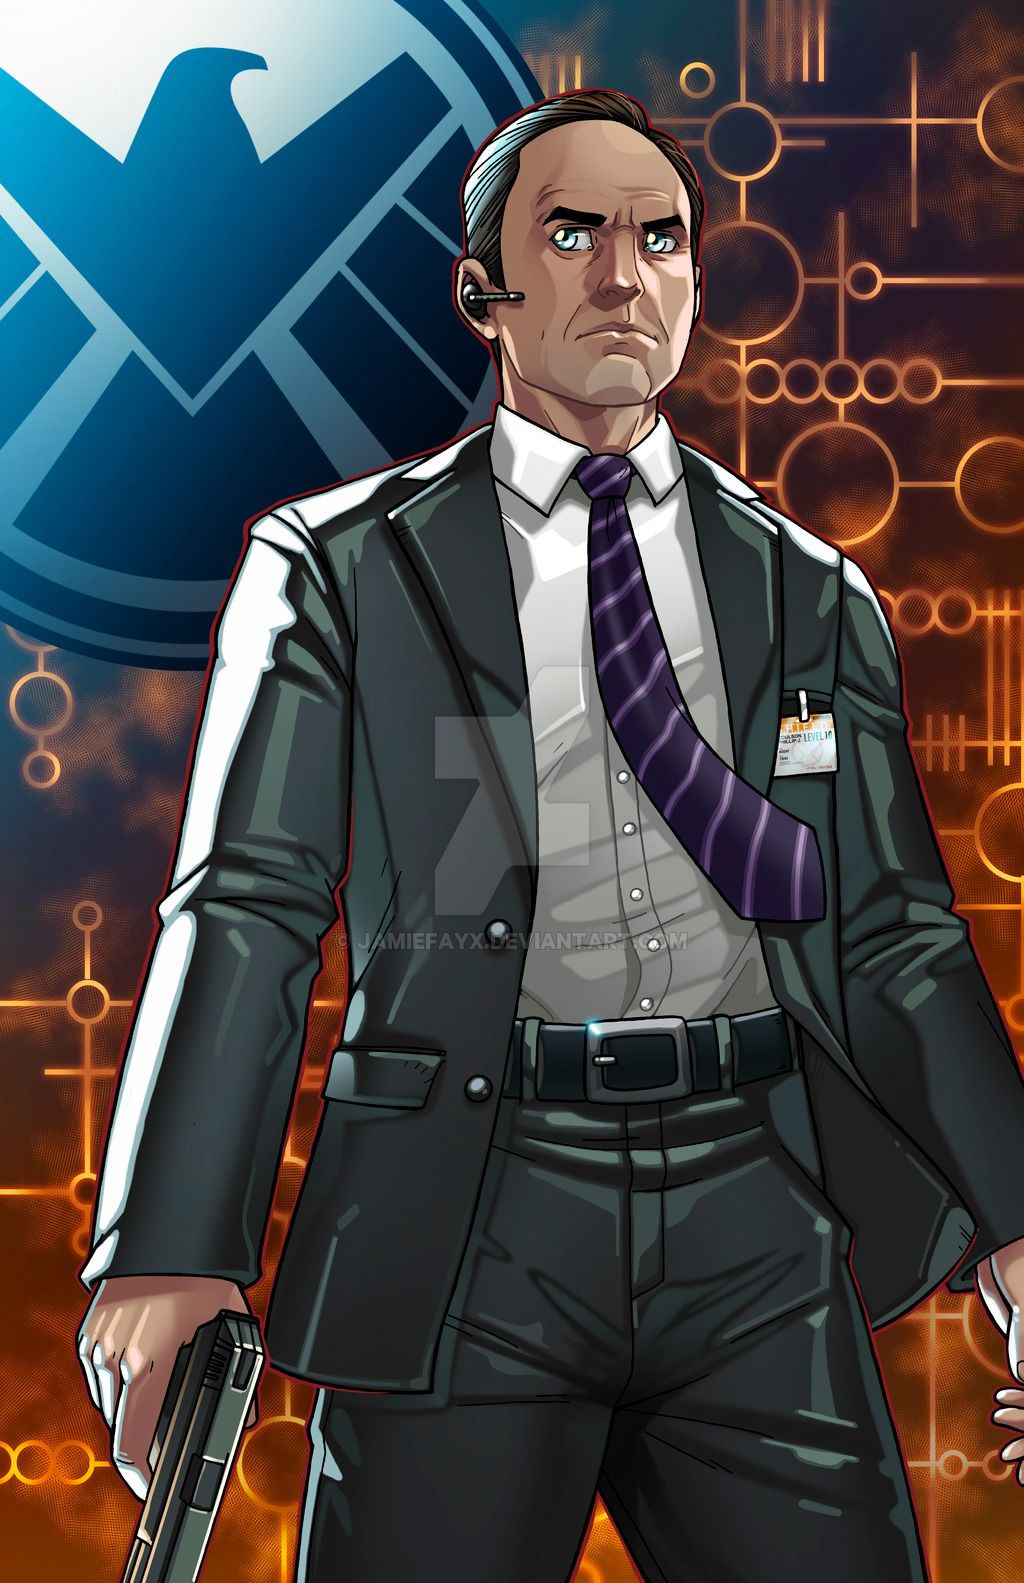 Agent coulson director of shield by jamiefayx